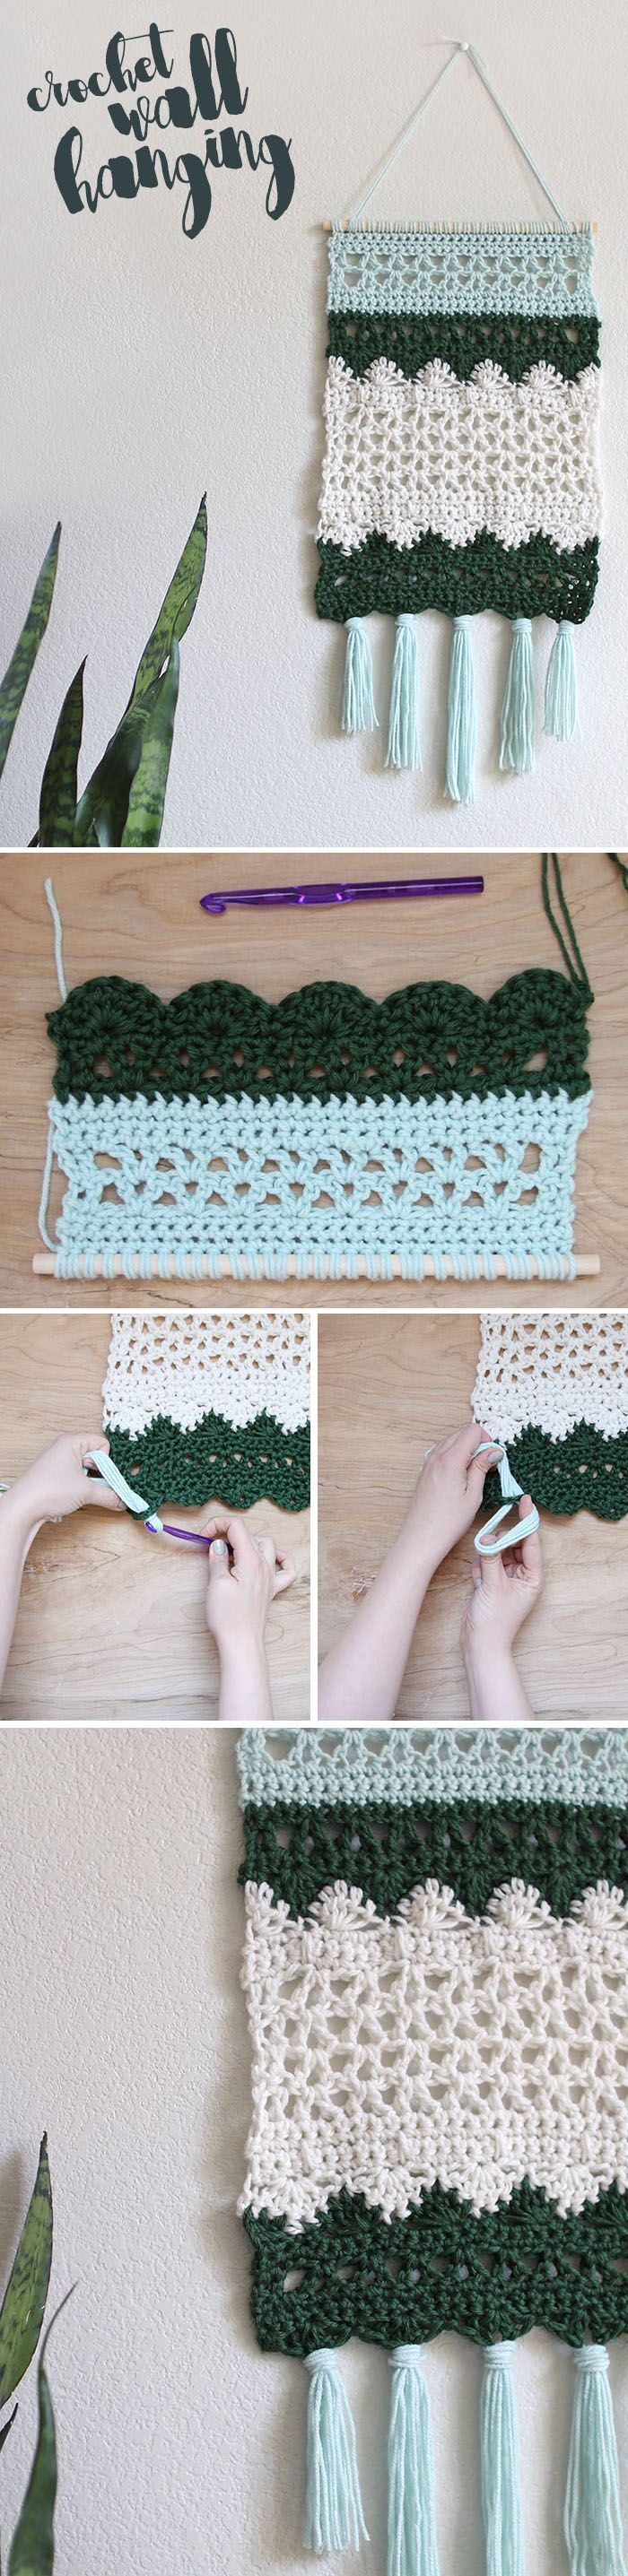 Home decor crochet patterns free on Crochet home decor pinterest